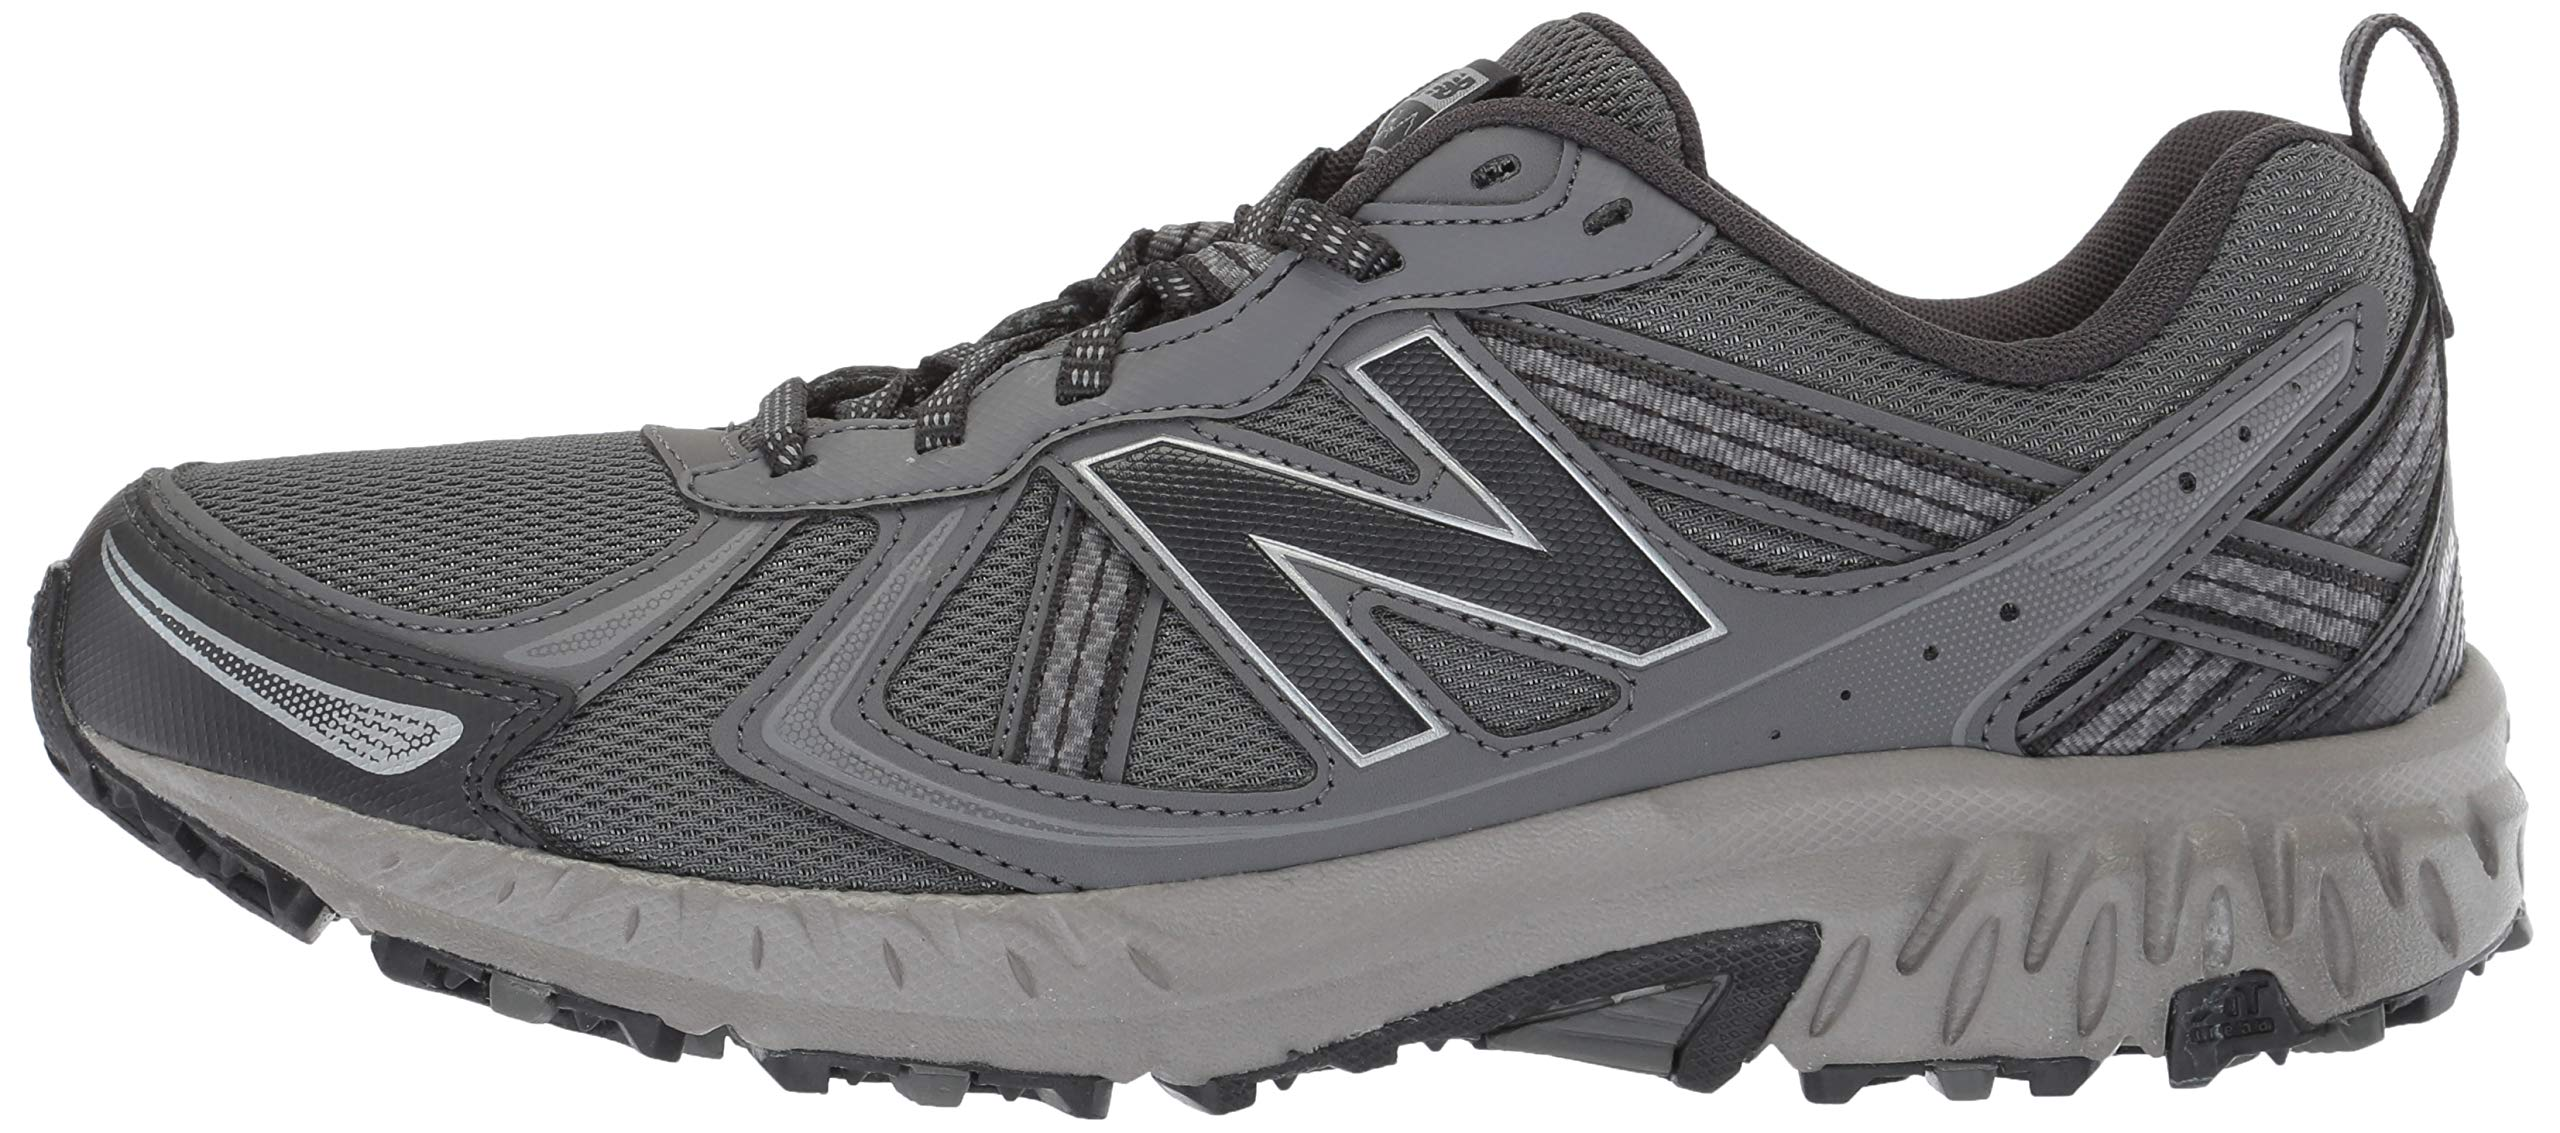 New Balance Men's 410v5 Cushioning Trail Running Shoe, Castlerock/Phantom, 12 D US by New Balance (Image #5)